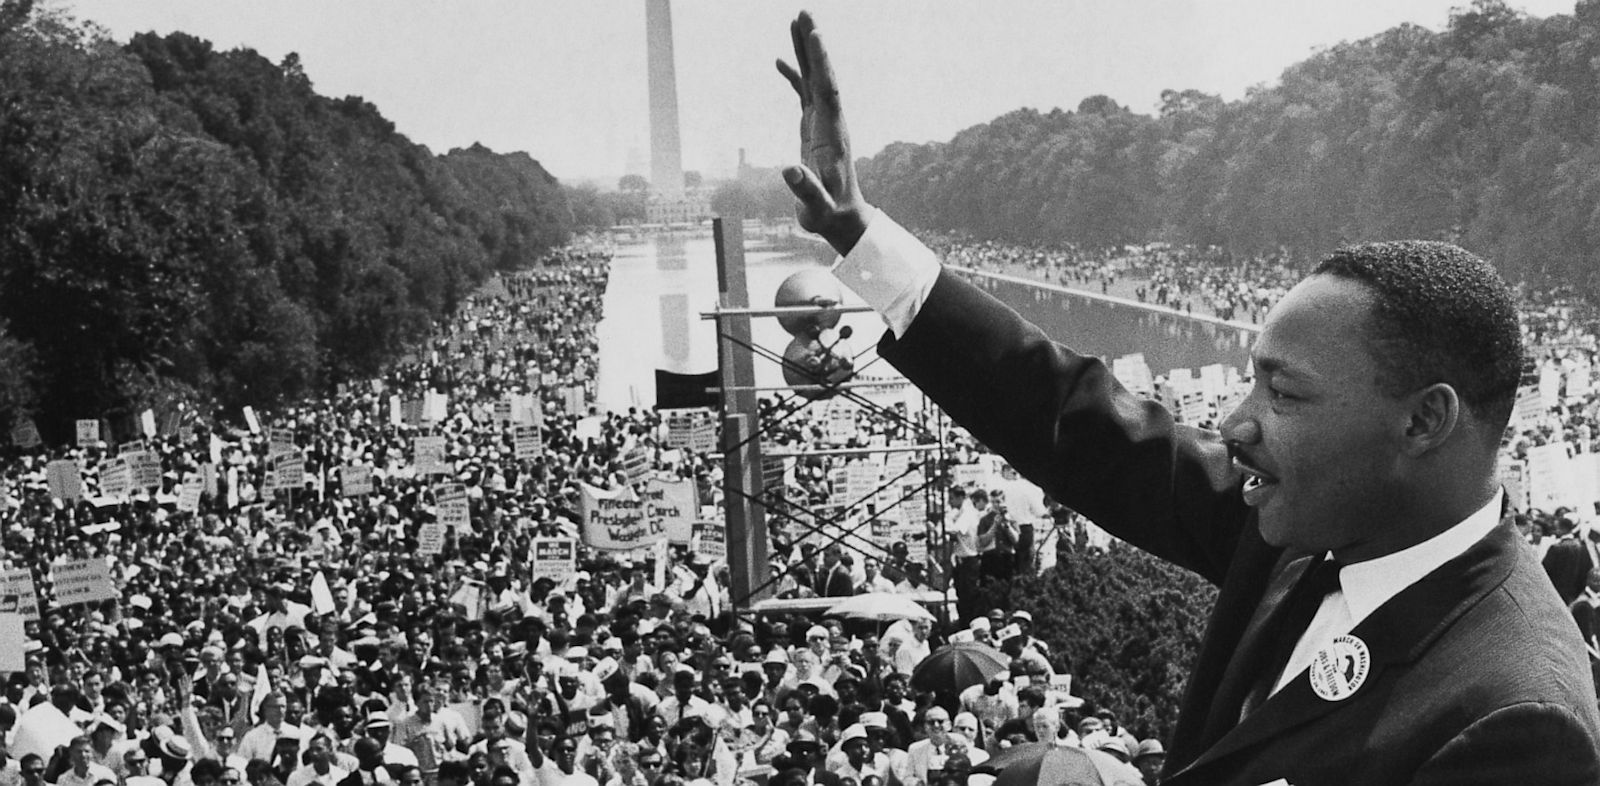 term paper on martin luther king speech the world house essay martin luther king jr part argumentative essay the world house essay martin